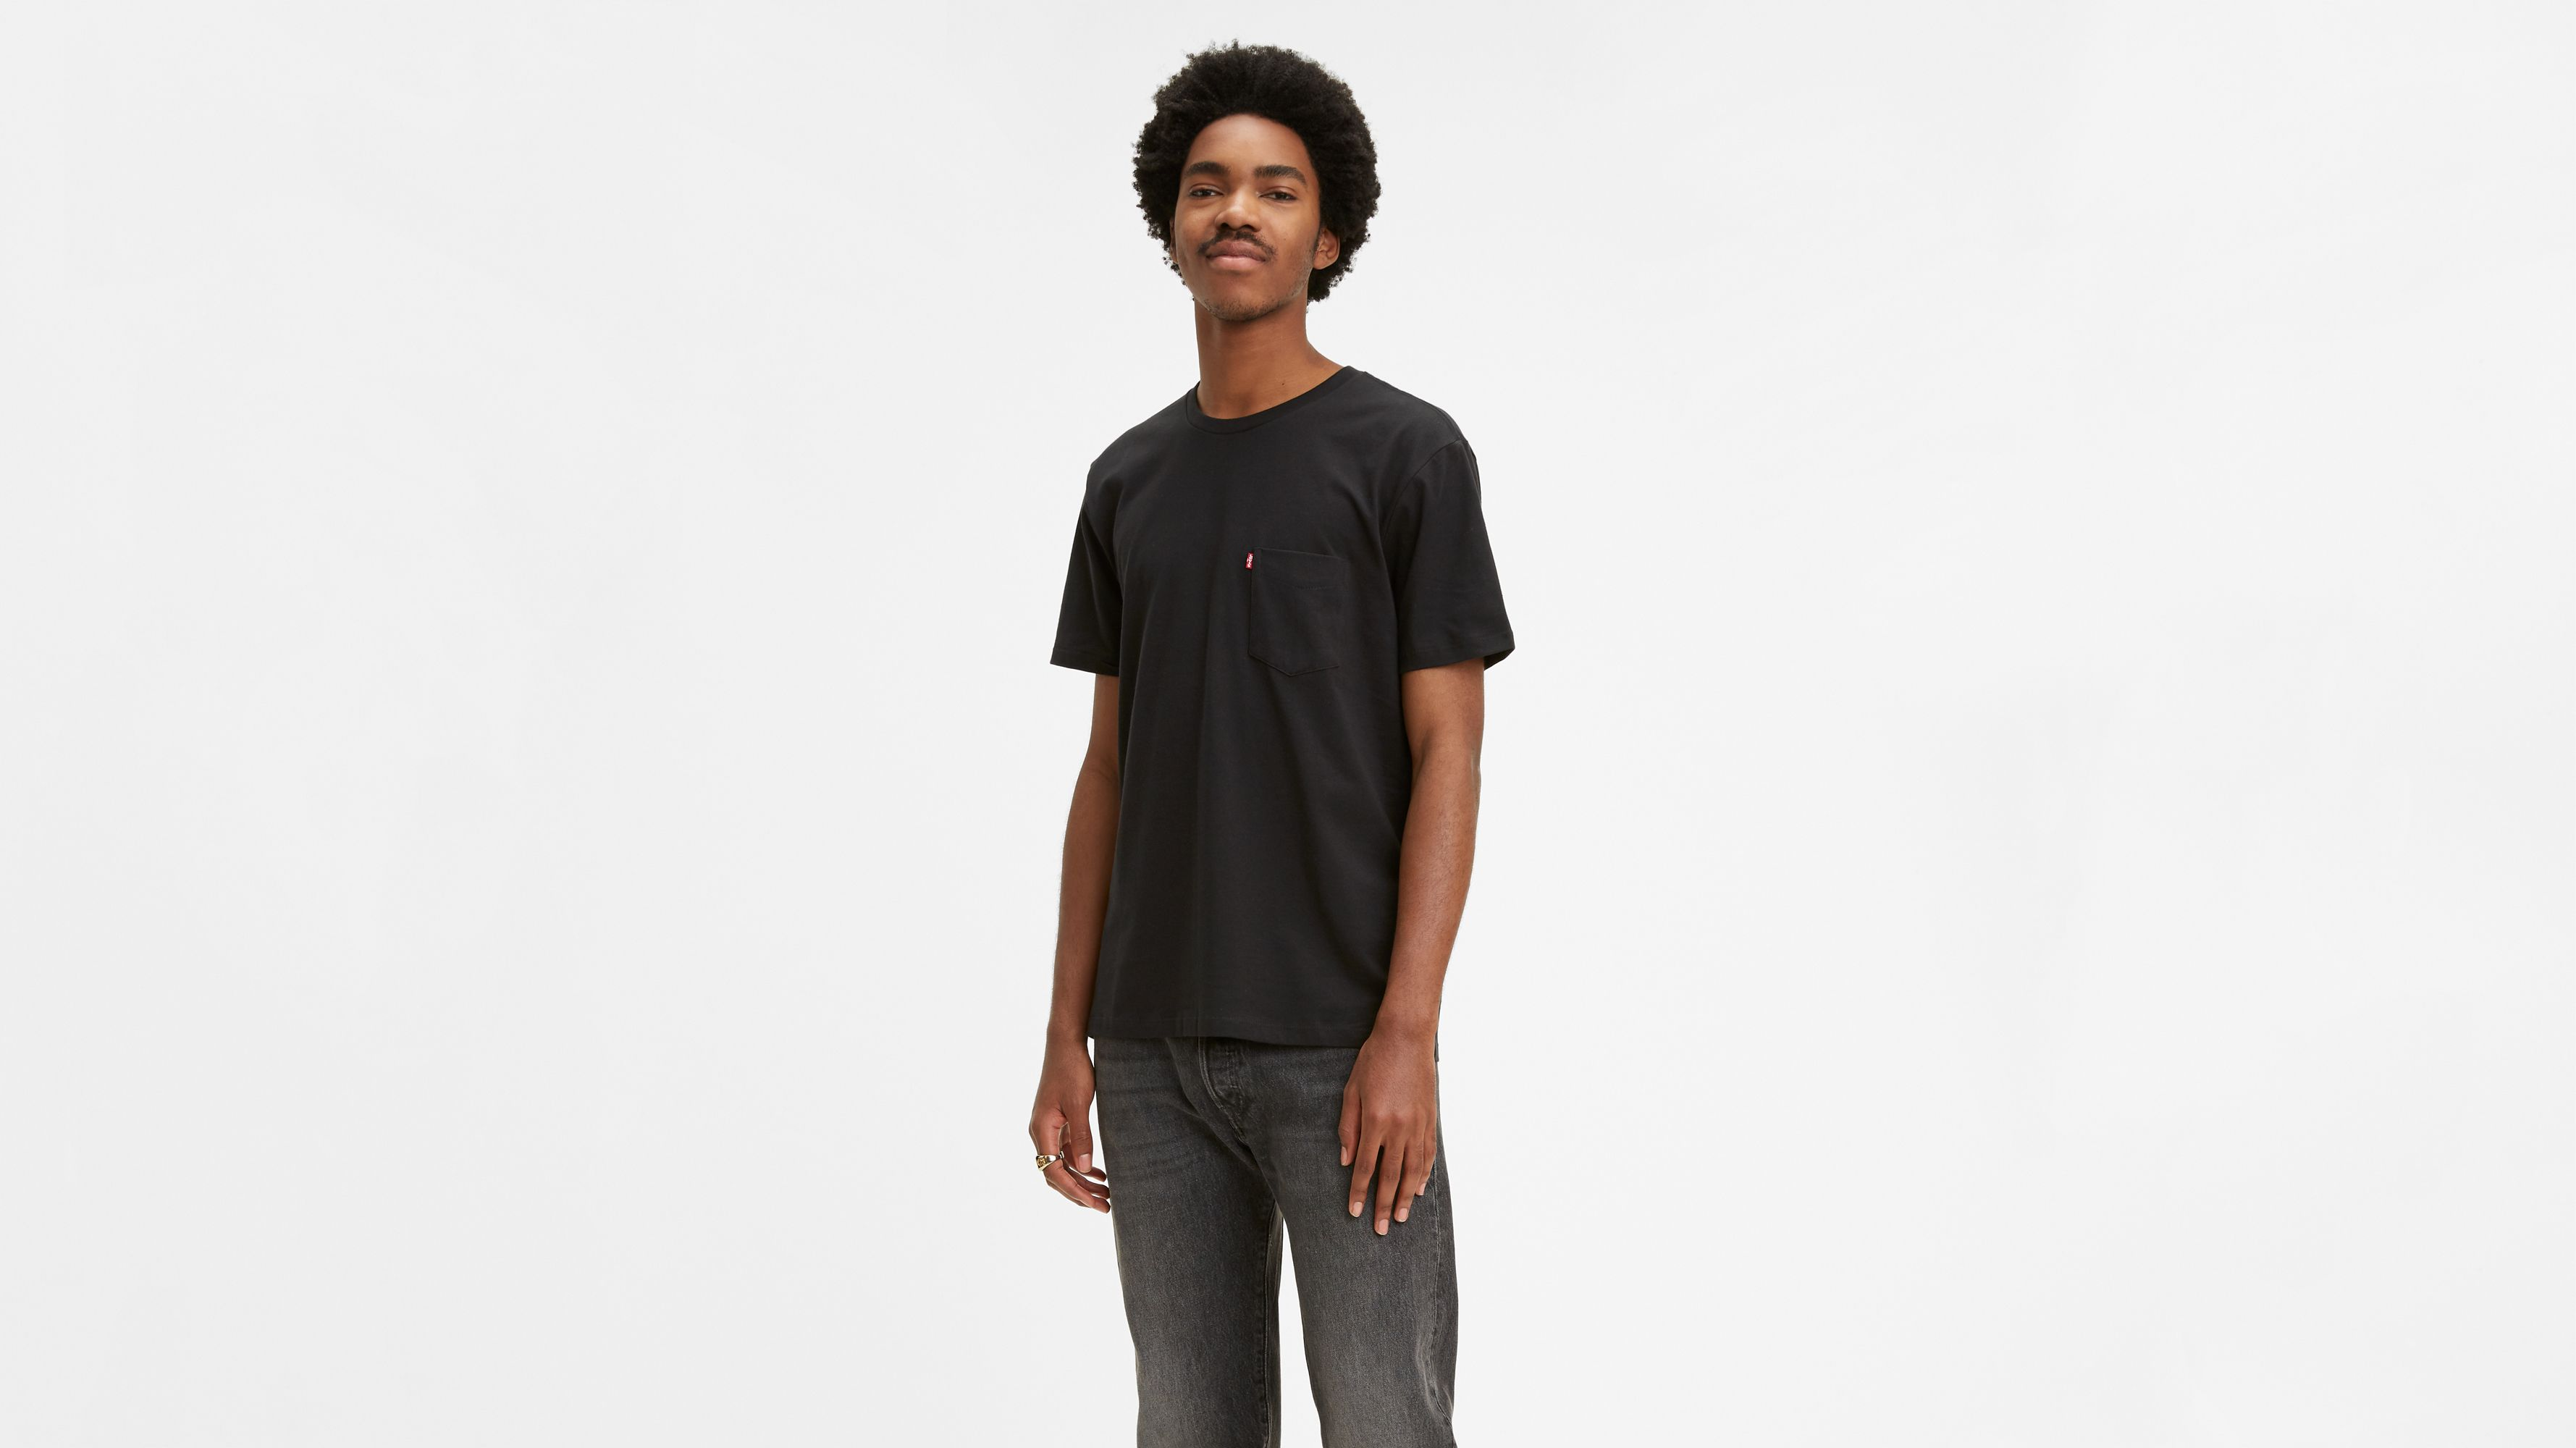 073fabc8d Sunset Pocket Tee Shirt - Black | Levi's® US